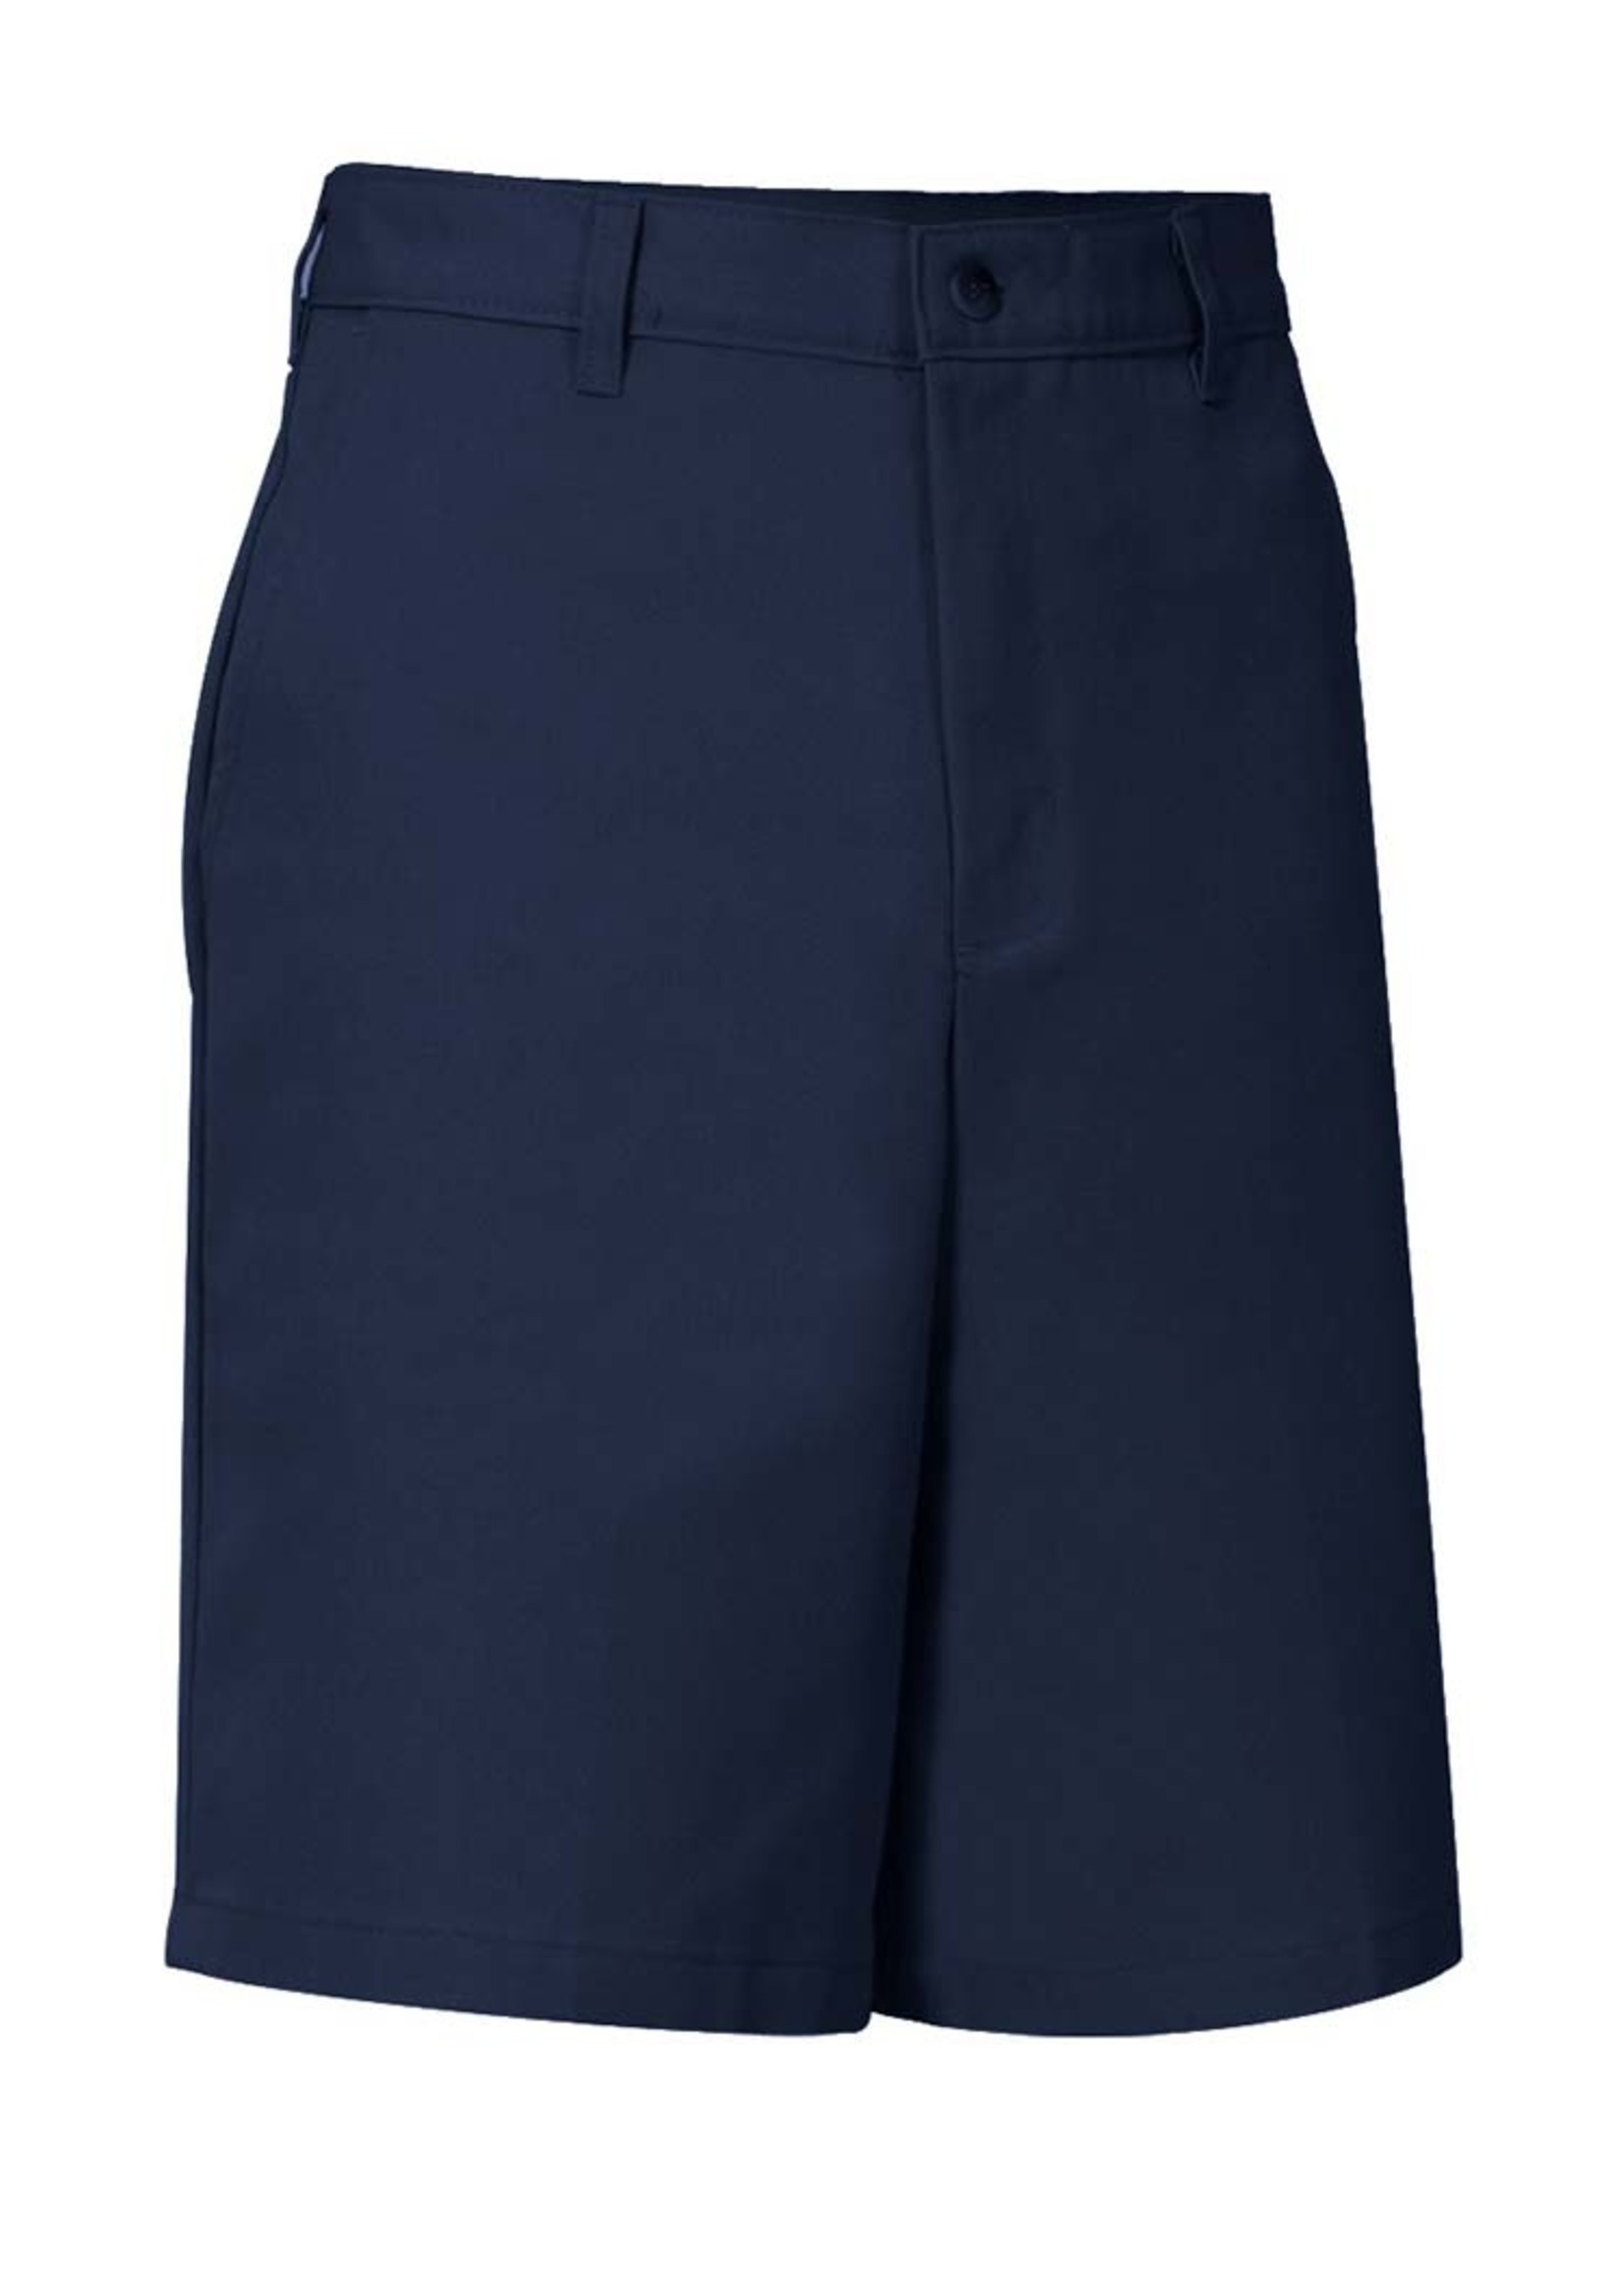 A+ Mens Navy Flat Front Shorts with logo